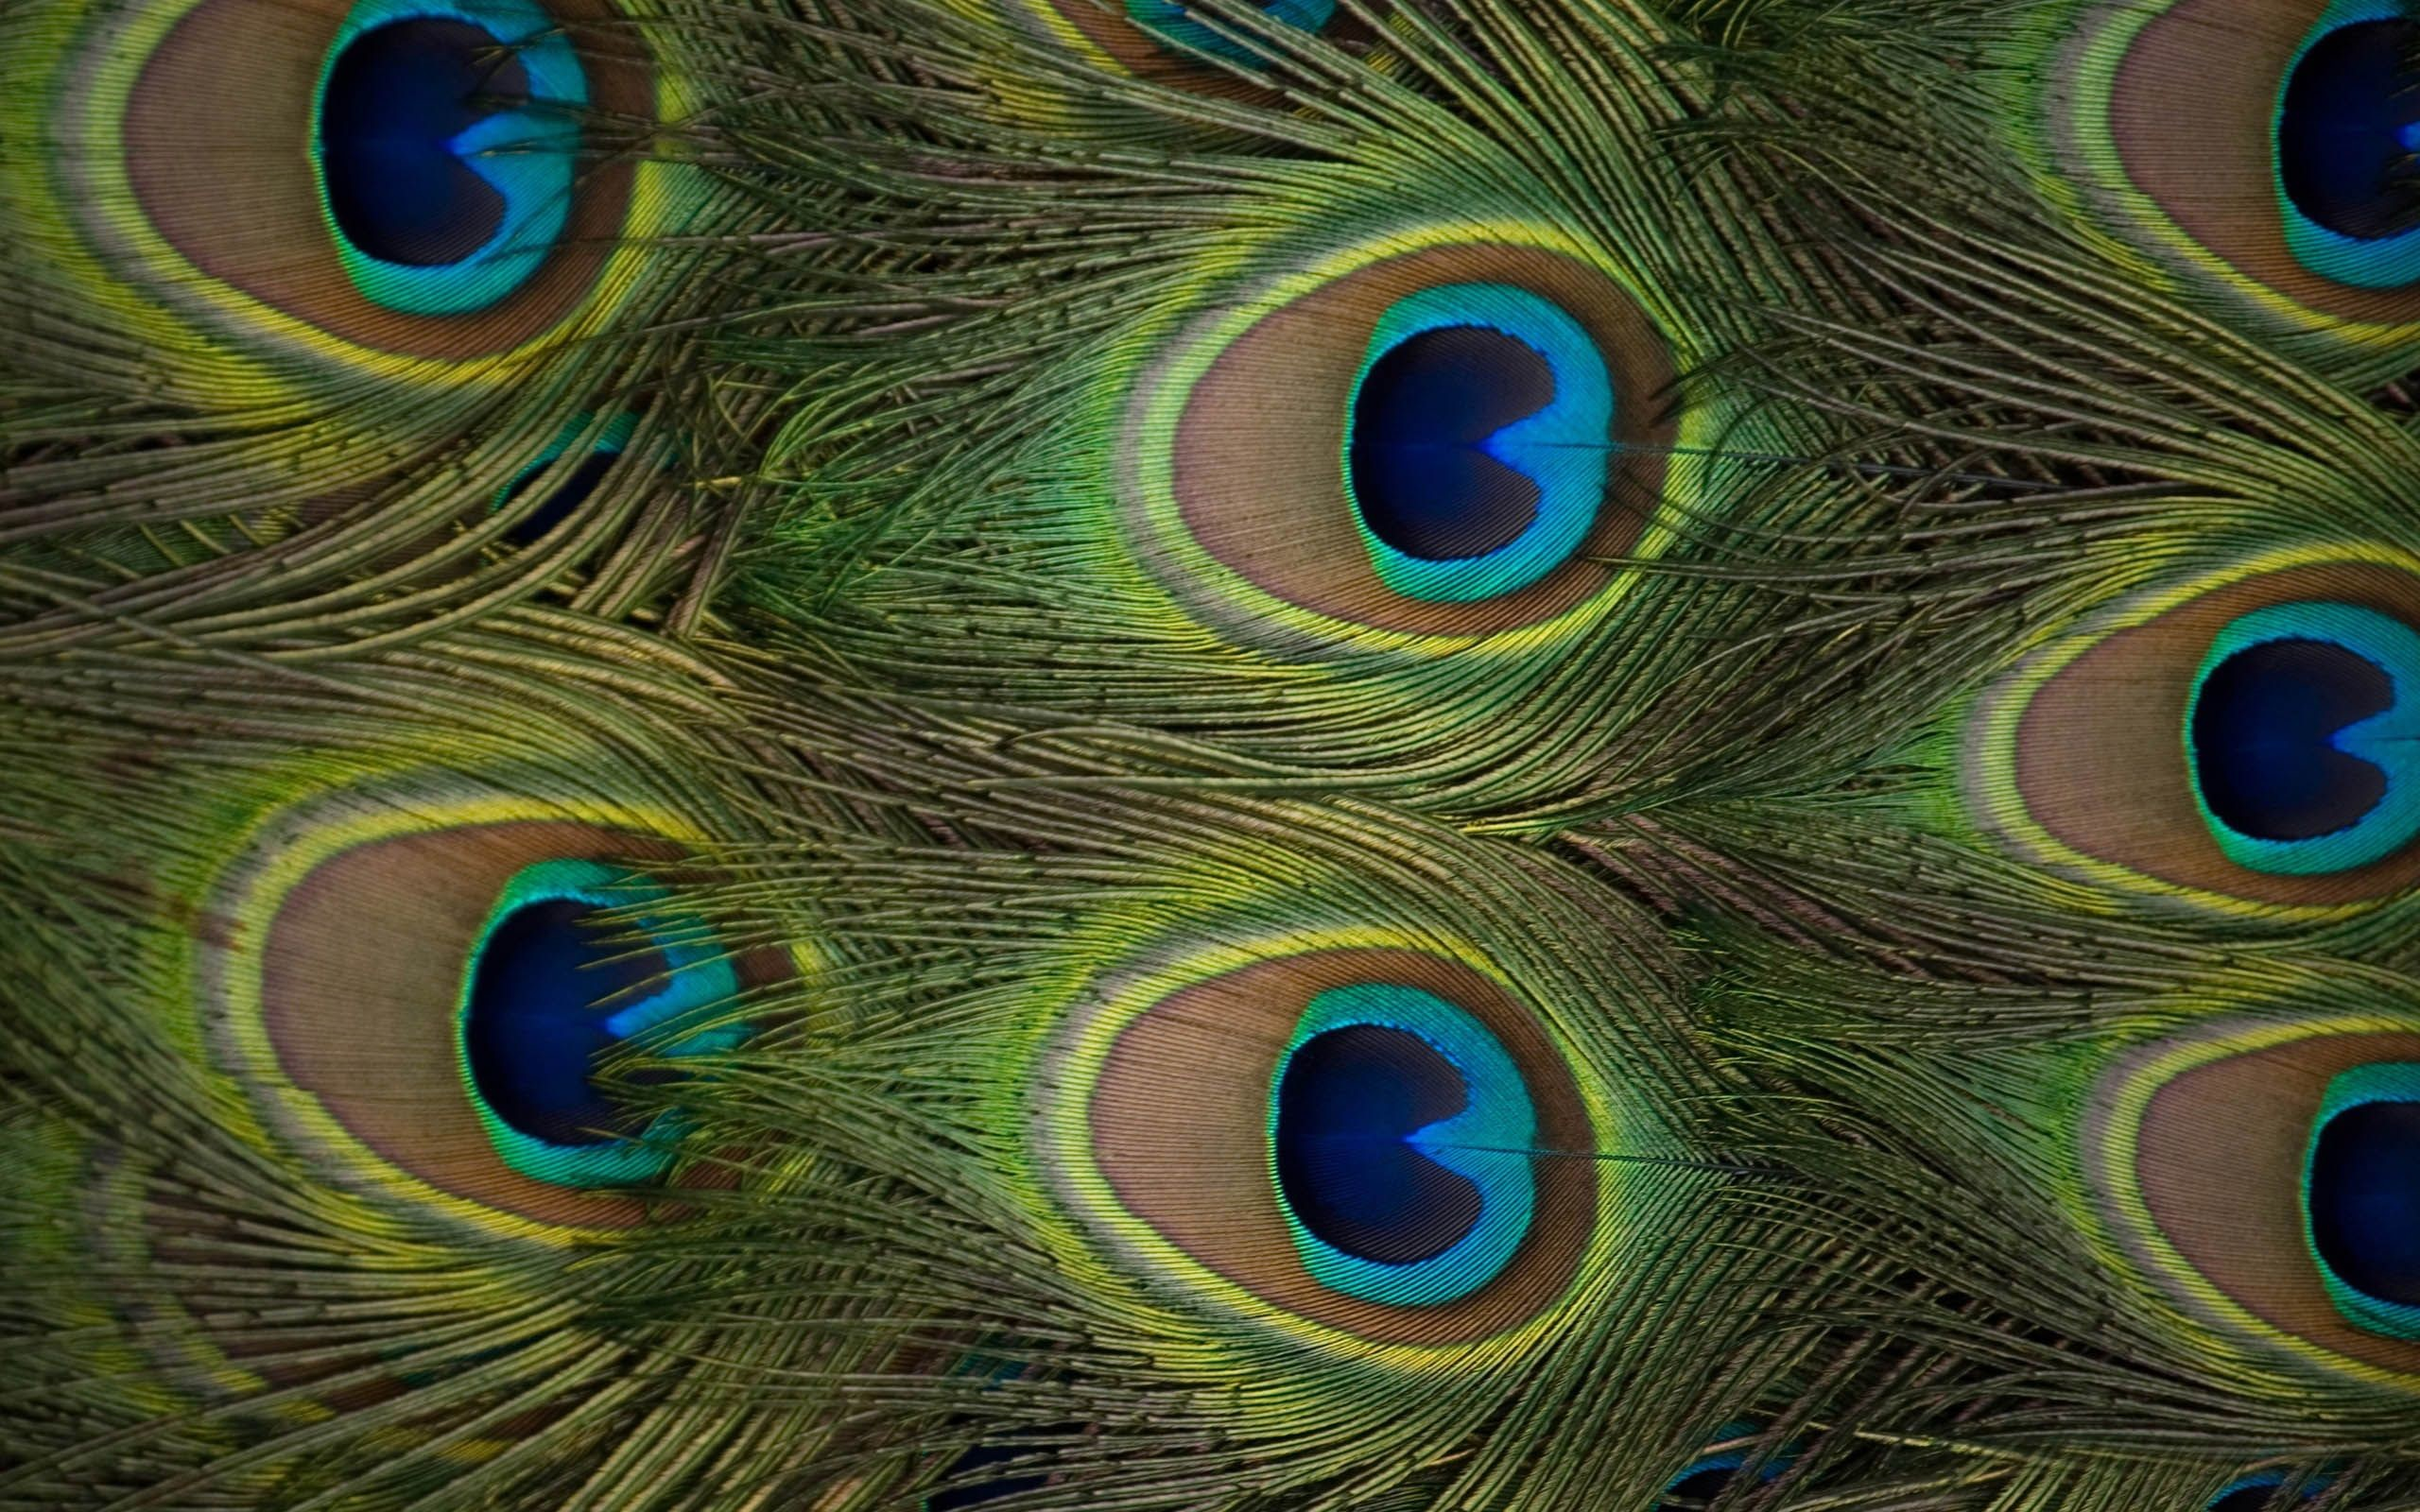 2560x1600 peacock pictures | New Peacock Feathers Full HD Wallpaper #18311 | Just  another High .